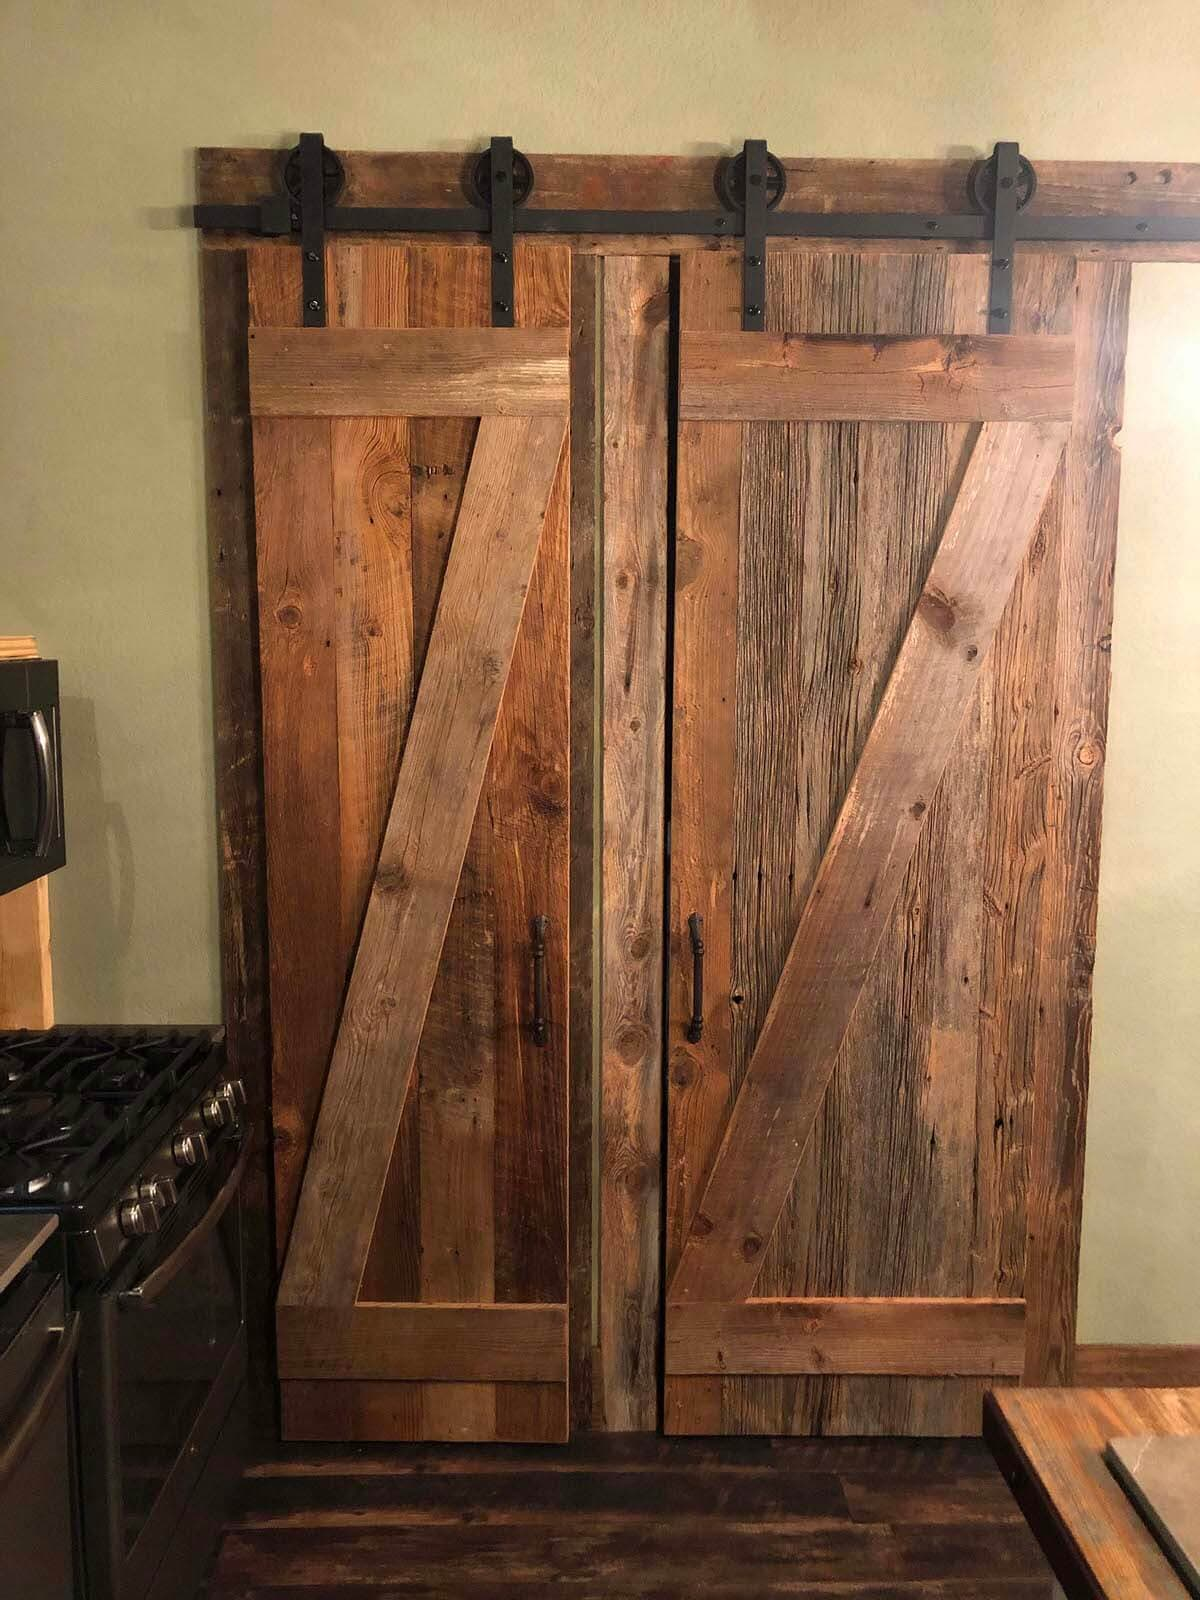 Rustic sliding barn door made from reclaimed wood.